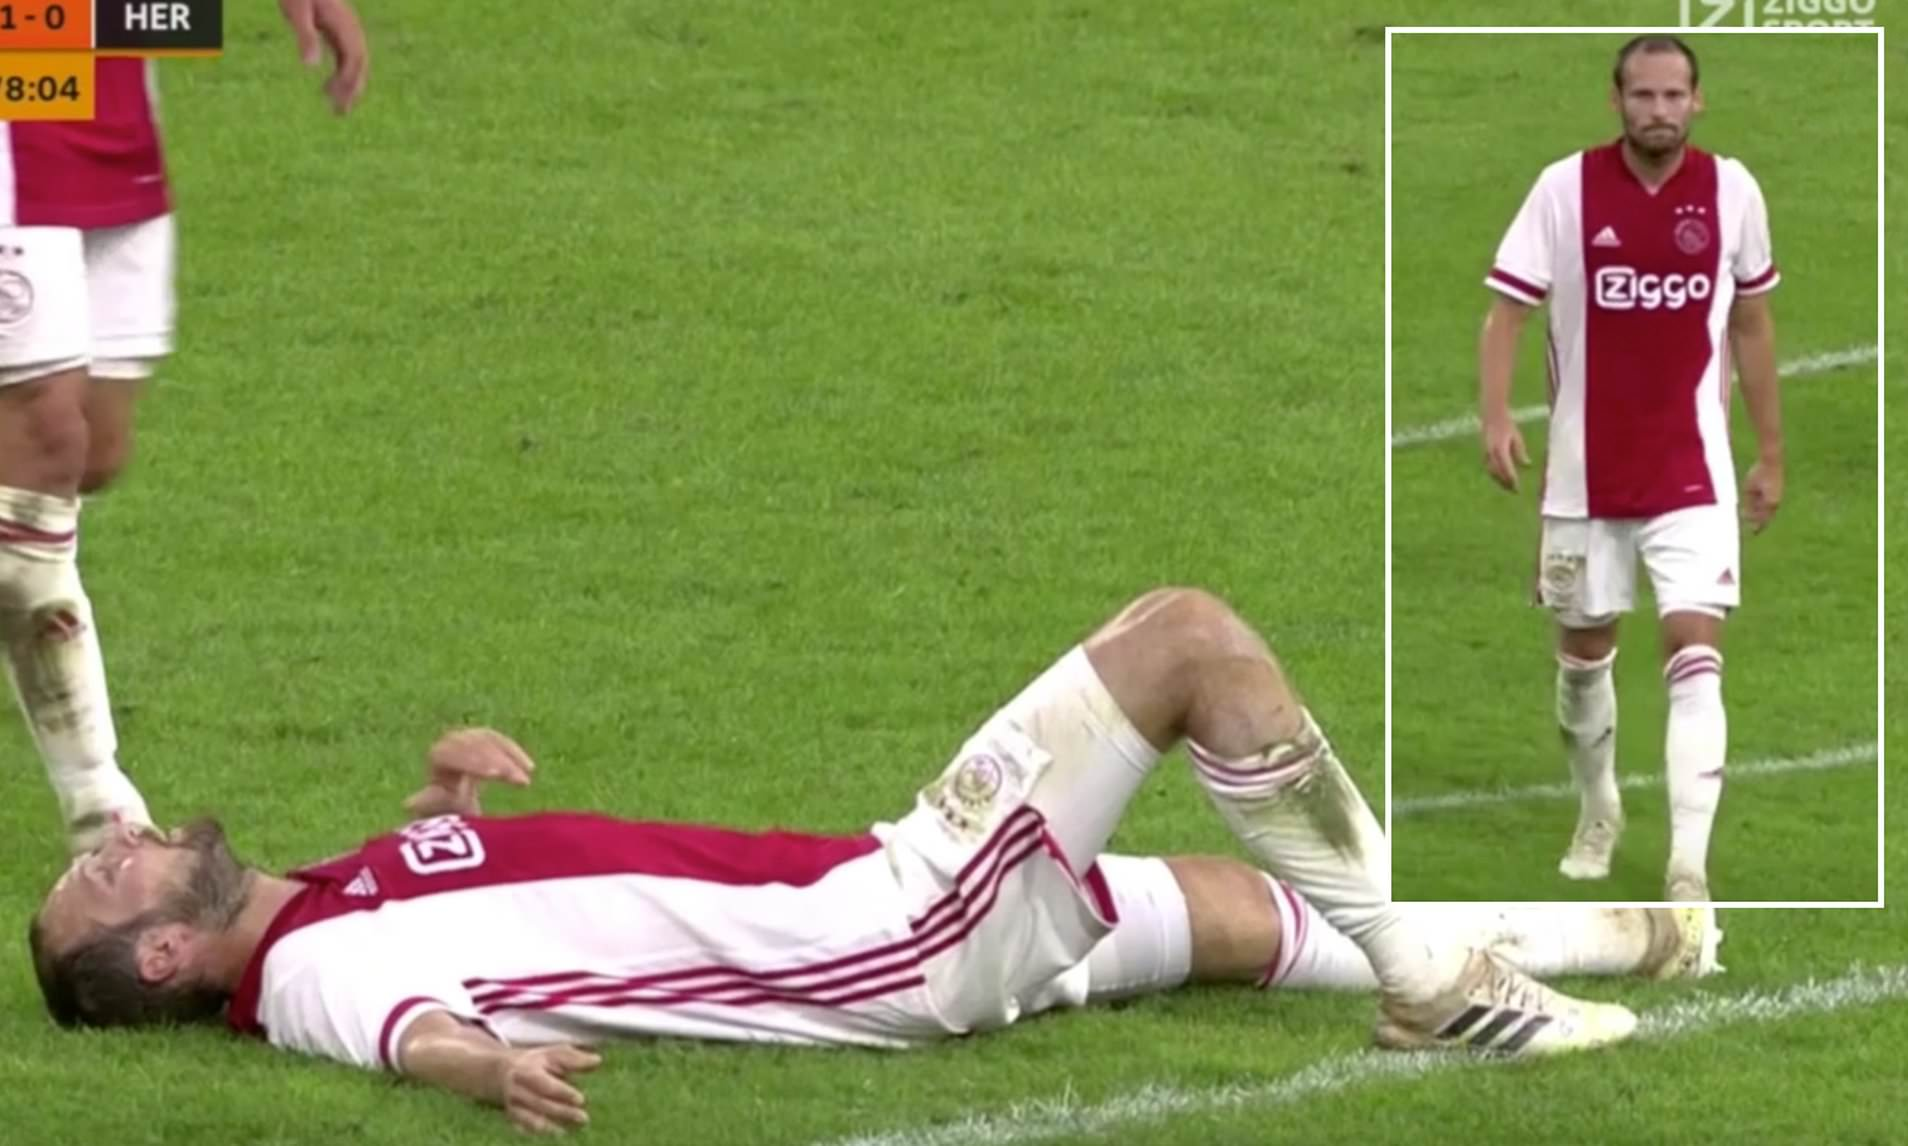 Daley Blind: Ajax defender collapses during pre-season friendly